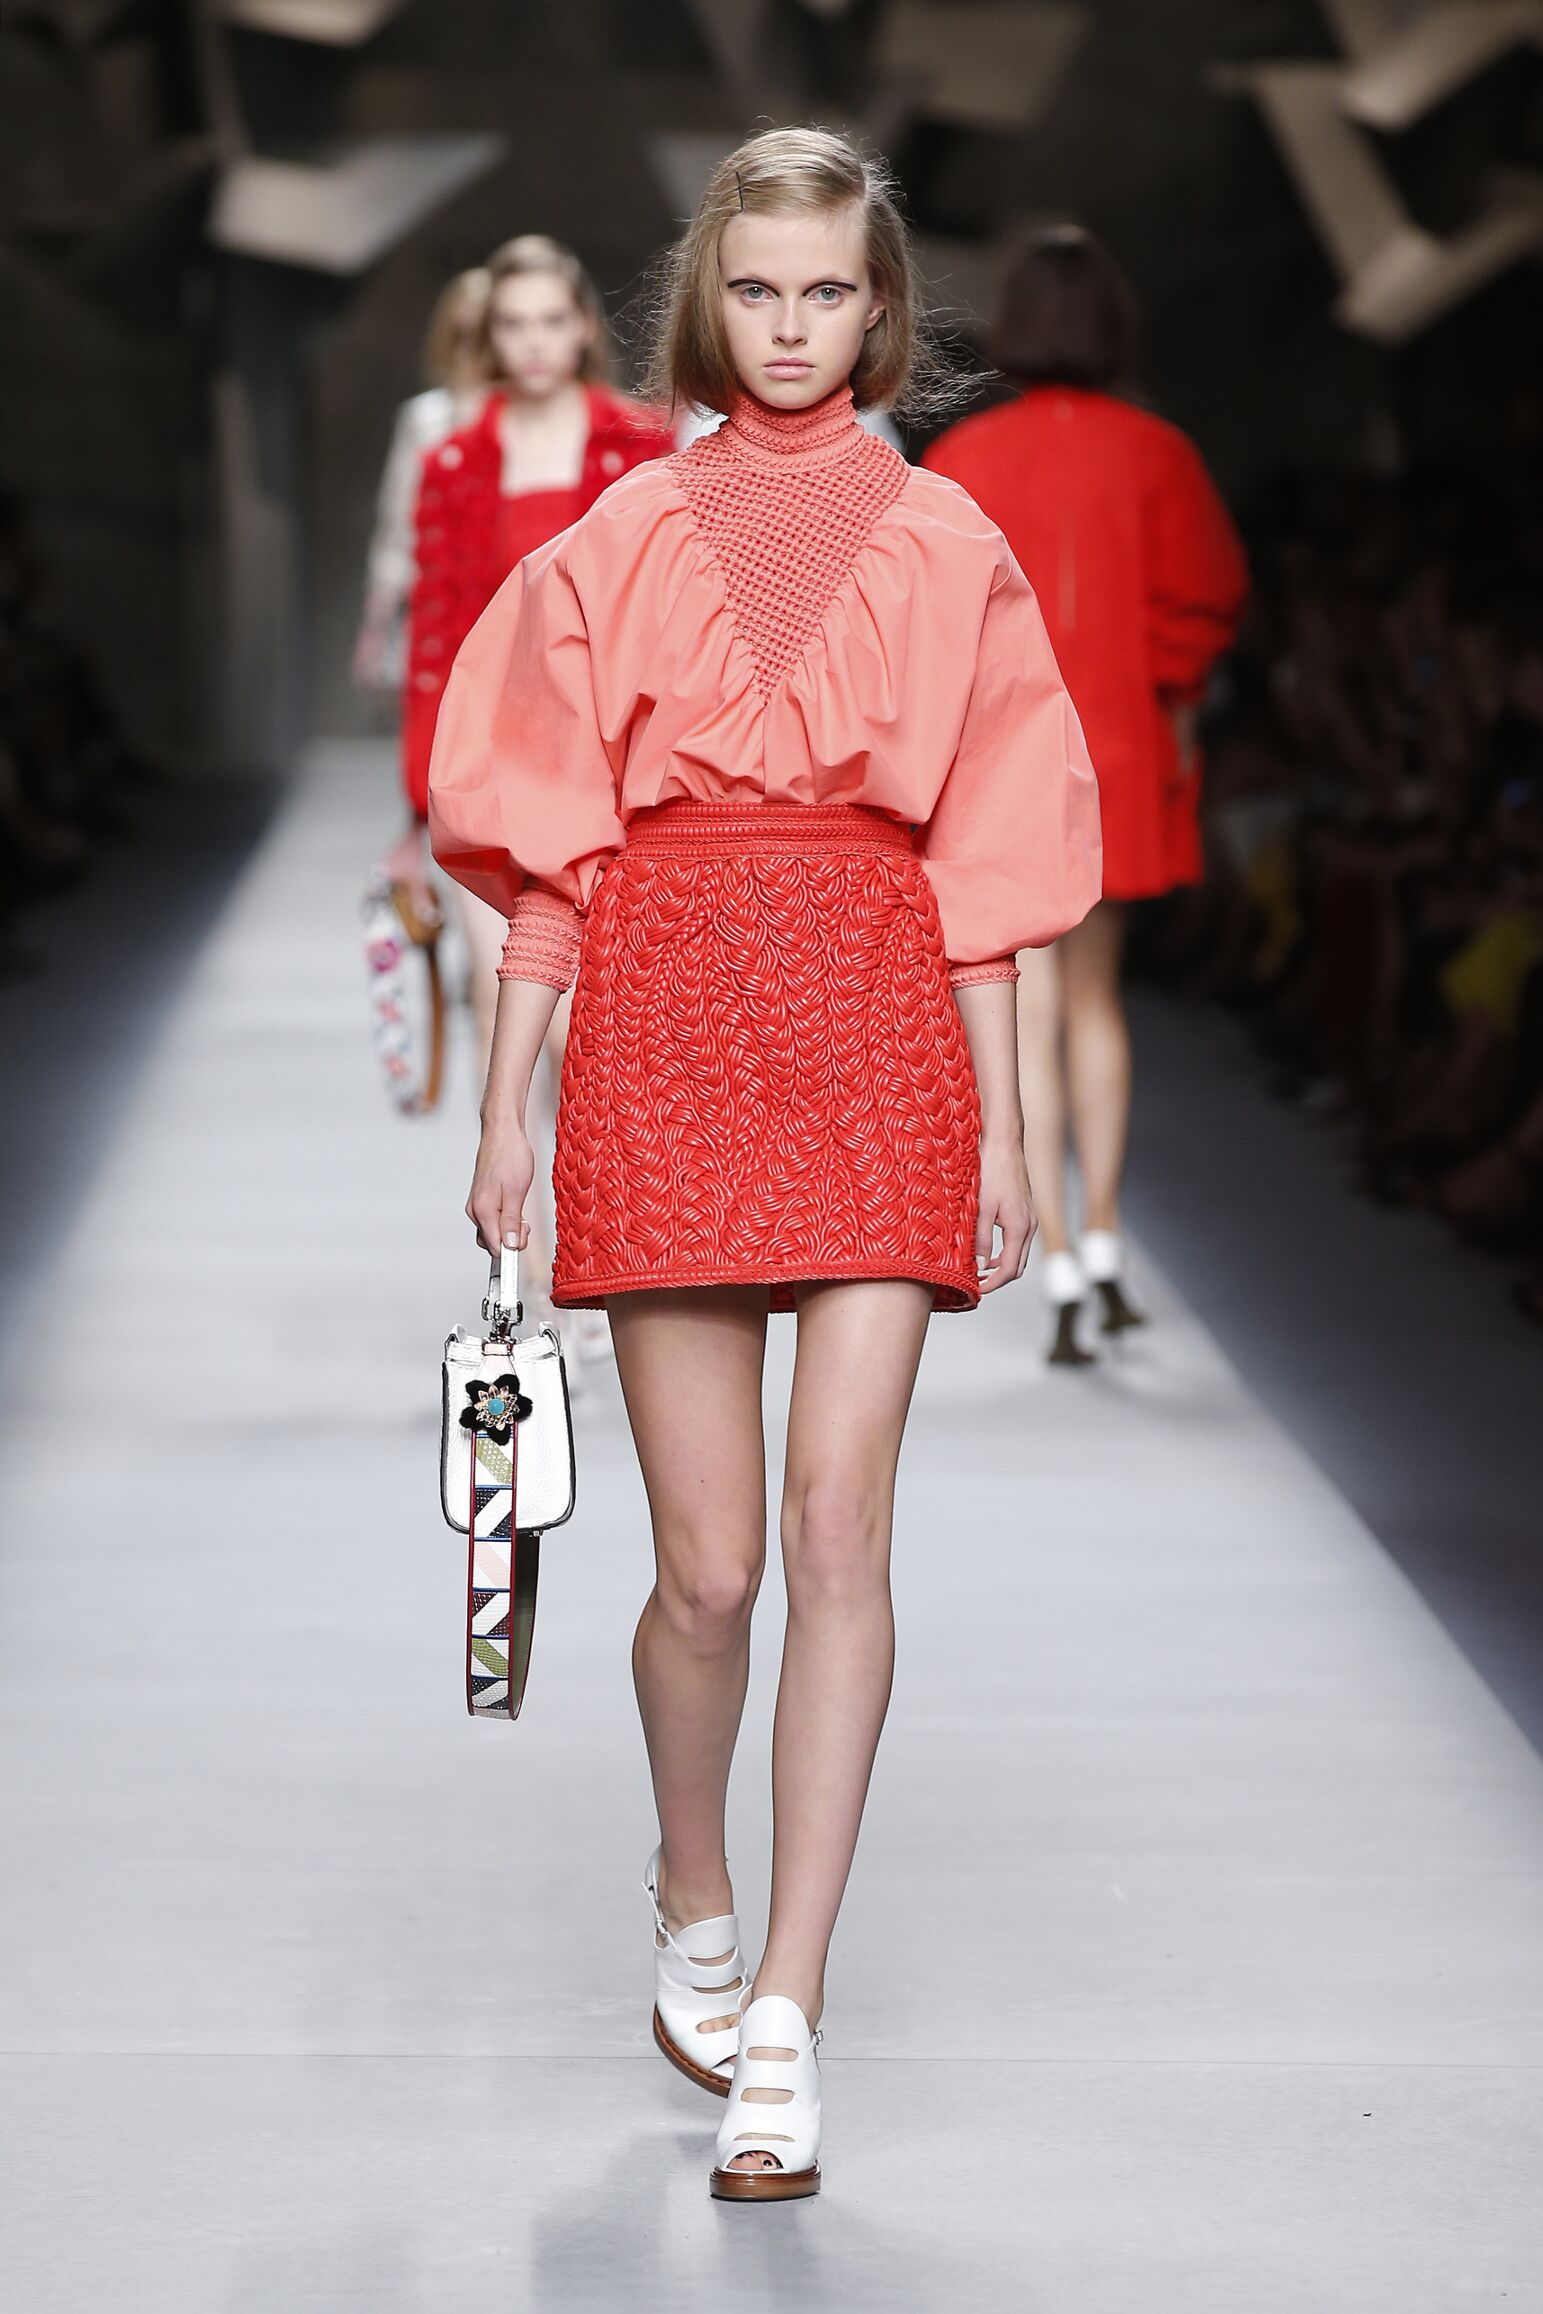 Spring 2016 Woman Fashion Show Fendi